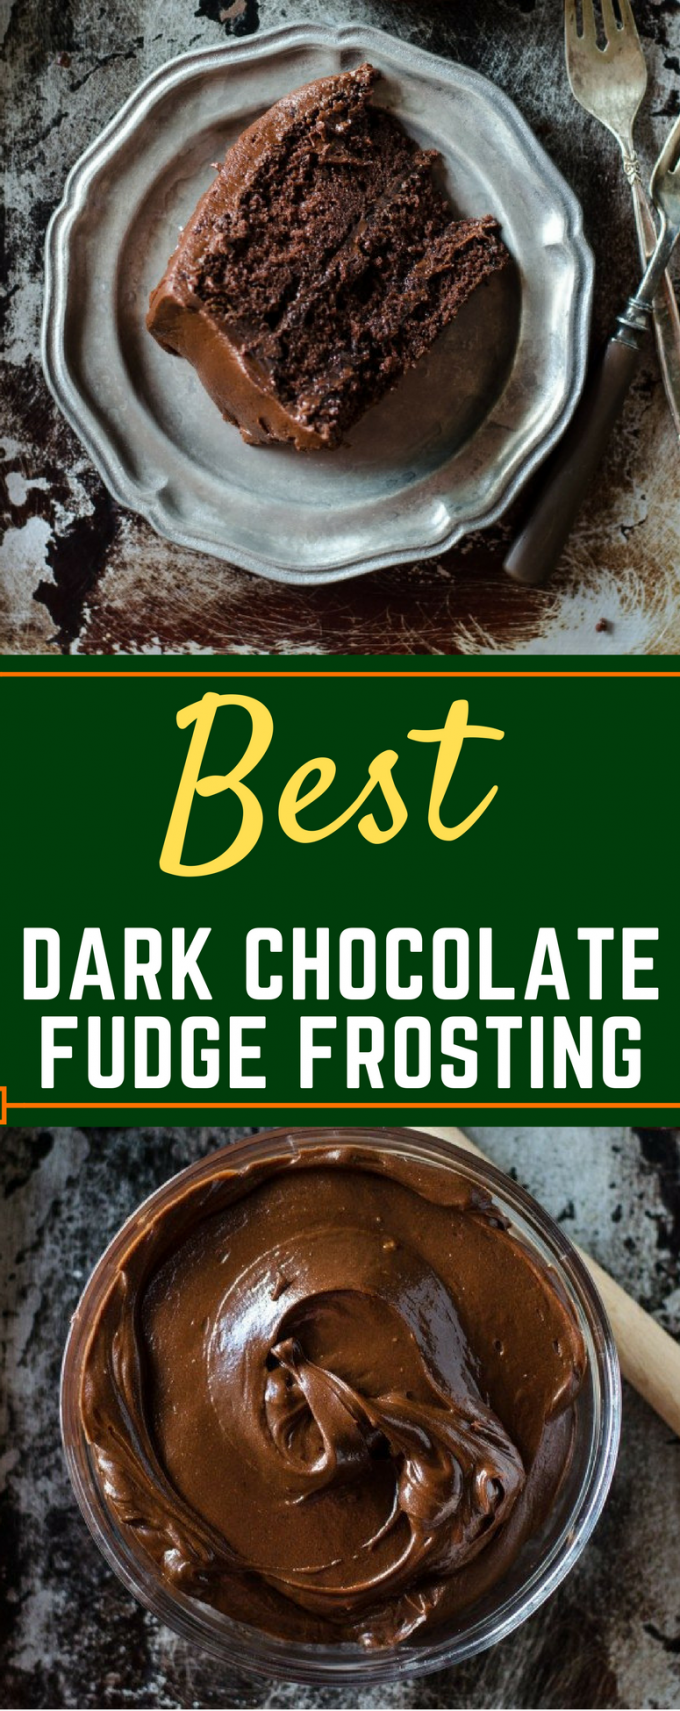 This is the BEST homemade Dark Chocolate Fudge Frosting recipe! It's perfect to top brownies, frost a yellow cake, or just eat by the spoon! You won't believe how easy it is to make homemade chocolate icing! #homemadechocolatefrosting #darkchocolatefudgefrosting #easydessertrecipes #gogogogourmet via @gogogogourmet